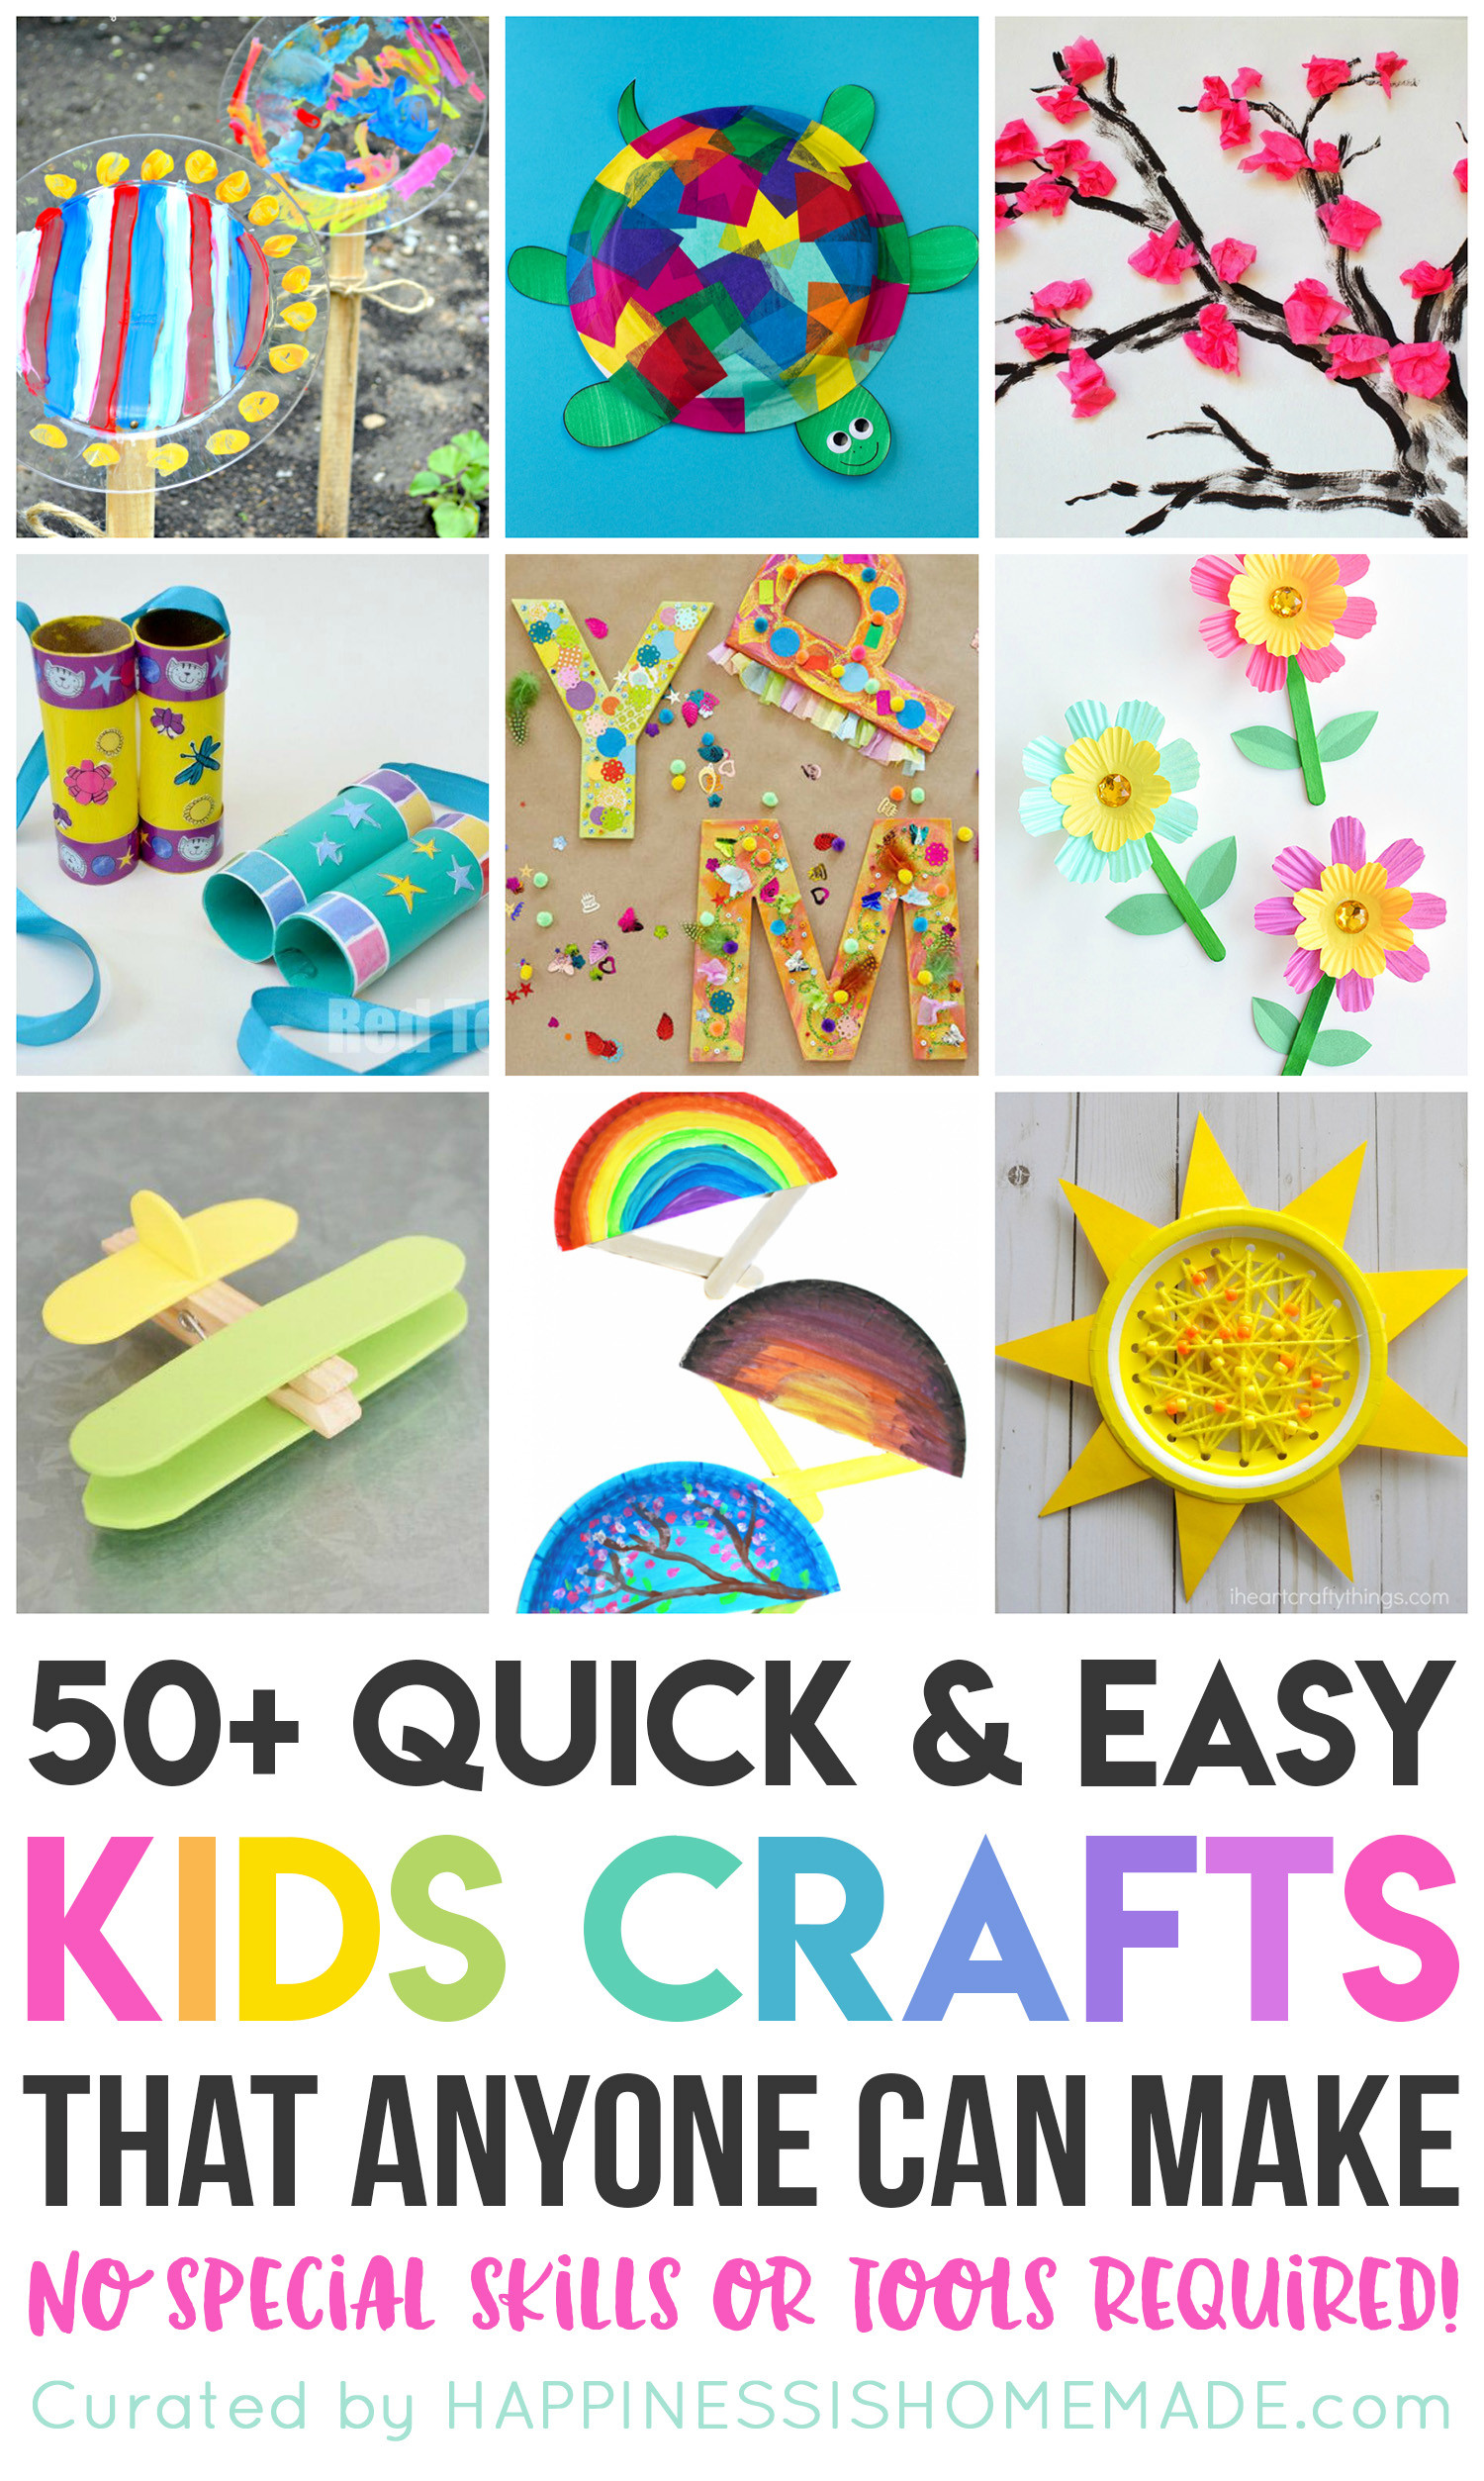 Best ideas about Easy Craft Ideas For Kids To Make At Home . Save or Pin 50 Quick & Easy Kids Crafts that ANYONE Can Make Now.